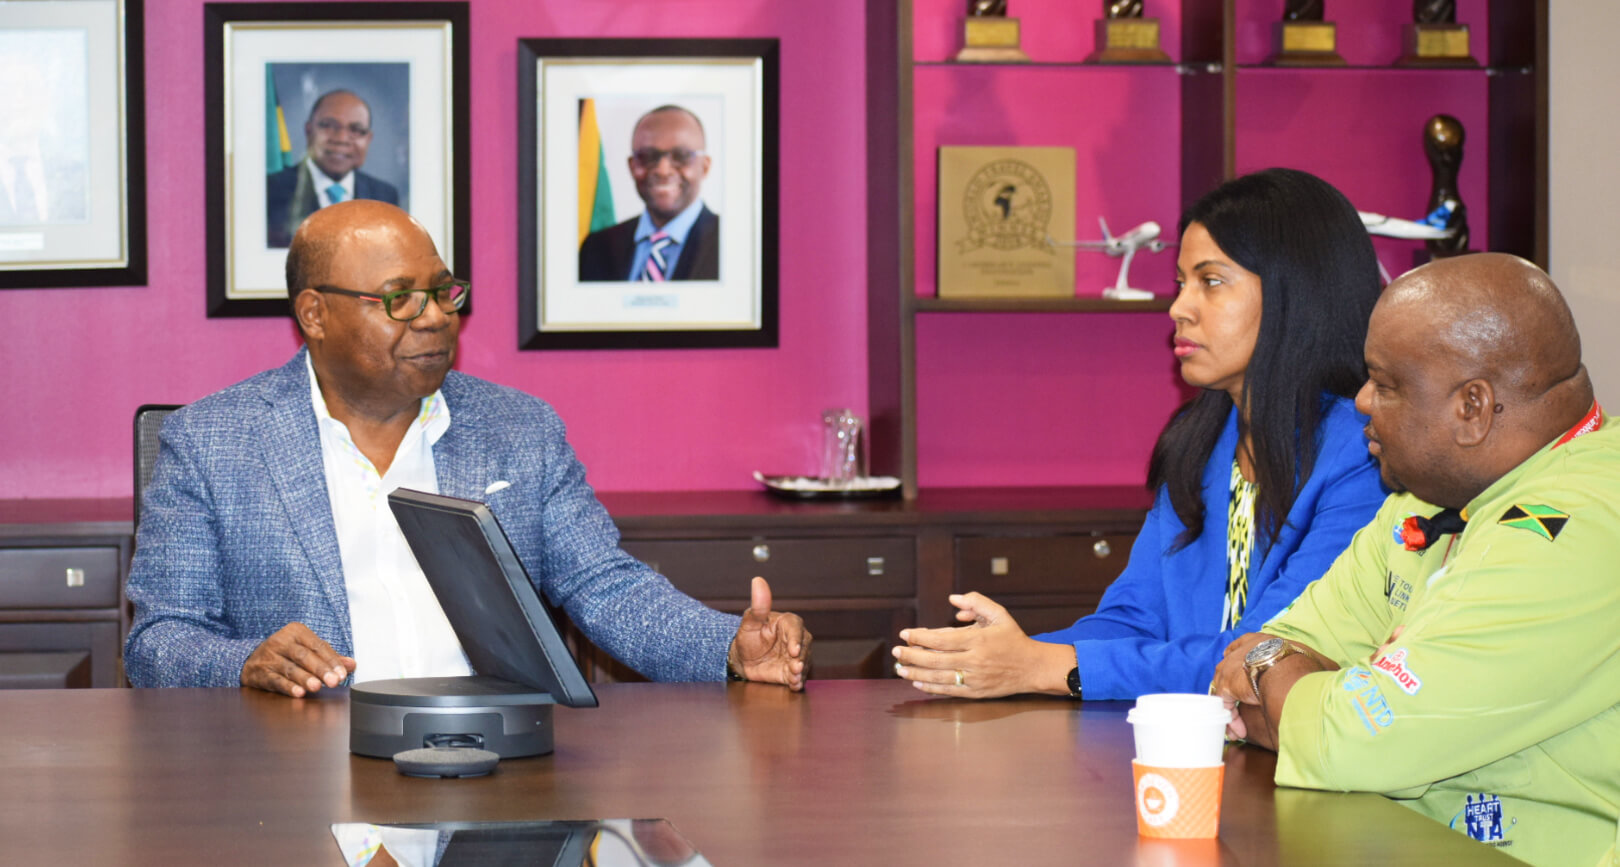 Jamaica Tourism Minister Meets with Jamaica's 2019 Taste of the Caribbean Team